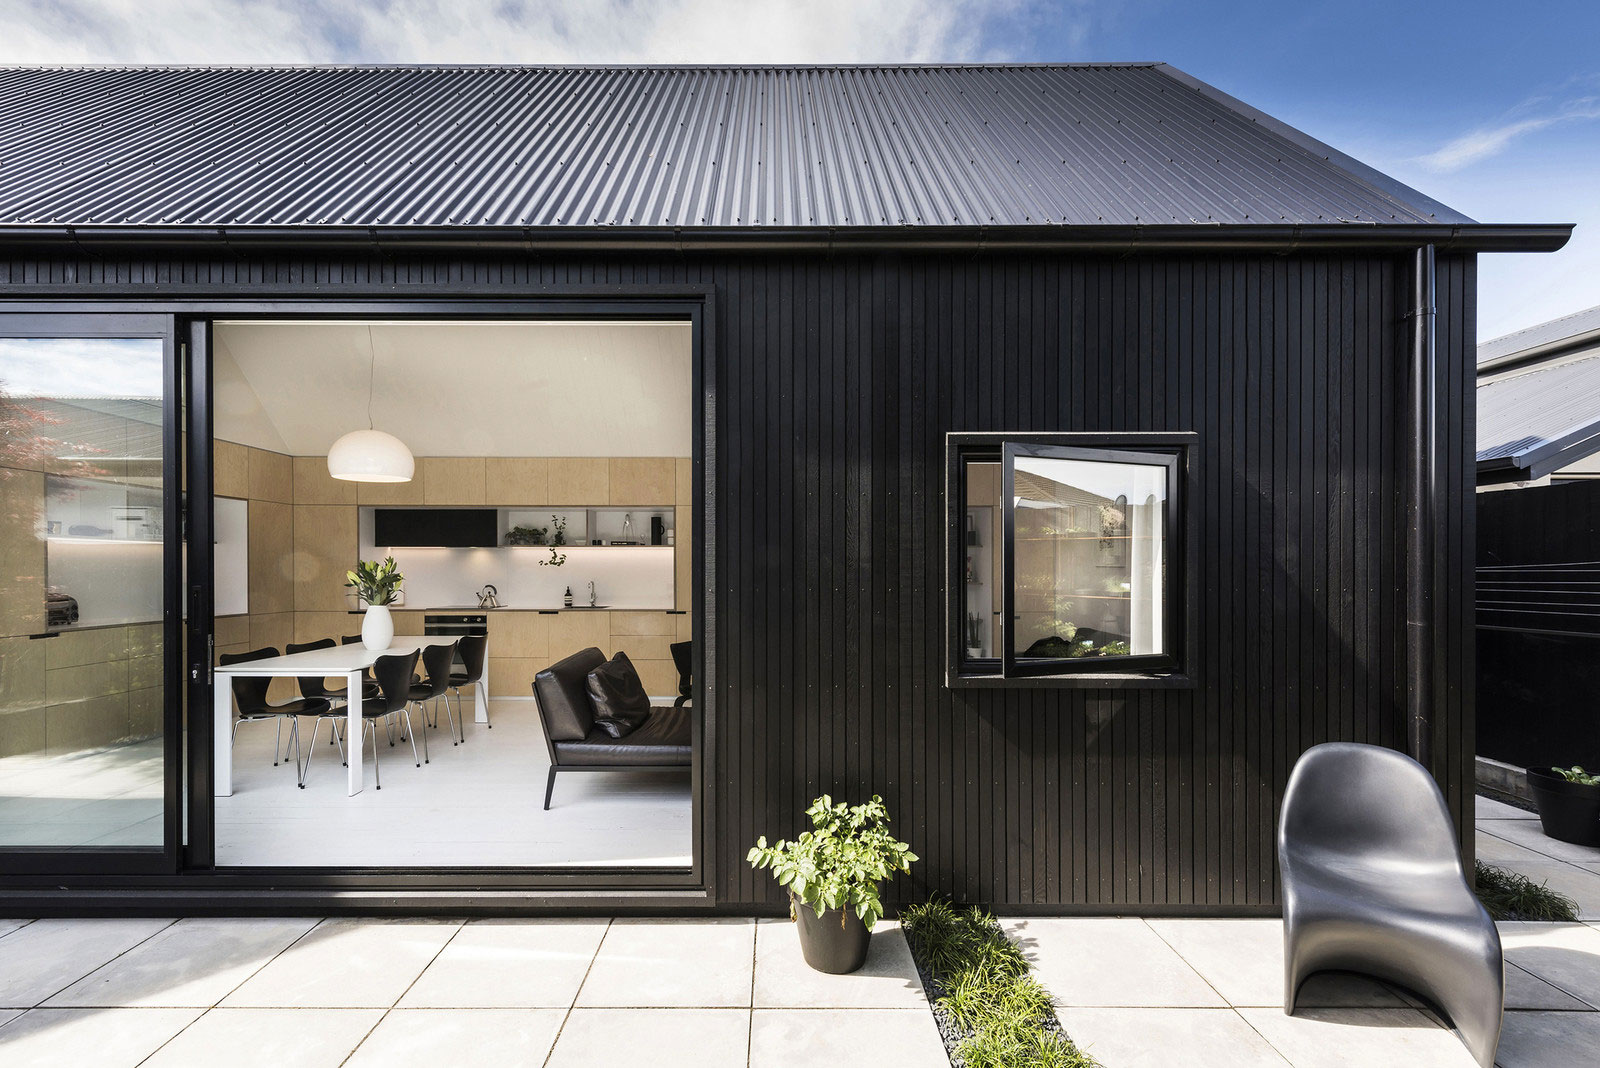 Design For Small House: Small House In New Zealand Designed By CoLab Arquitectura